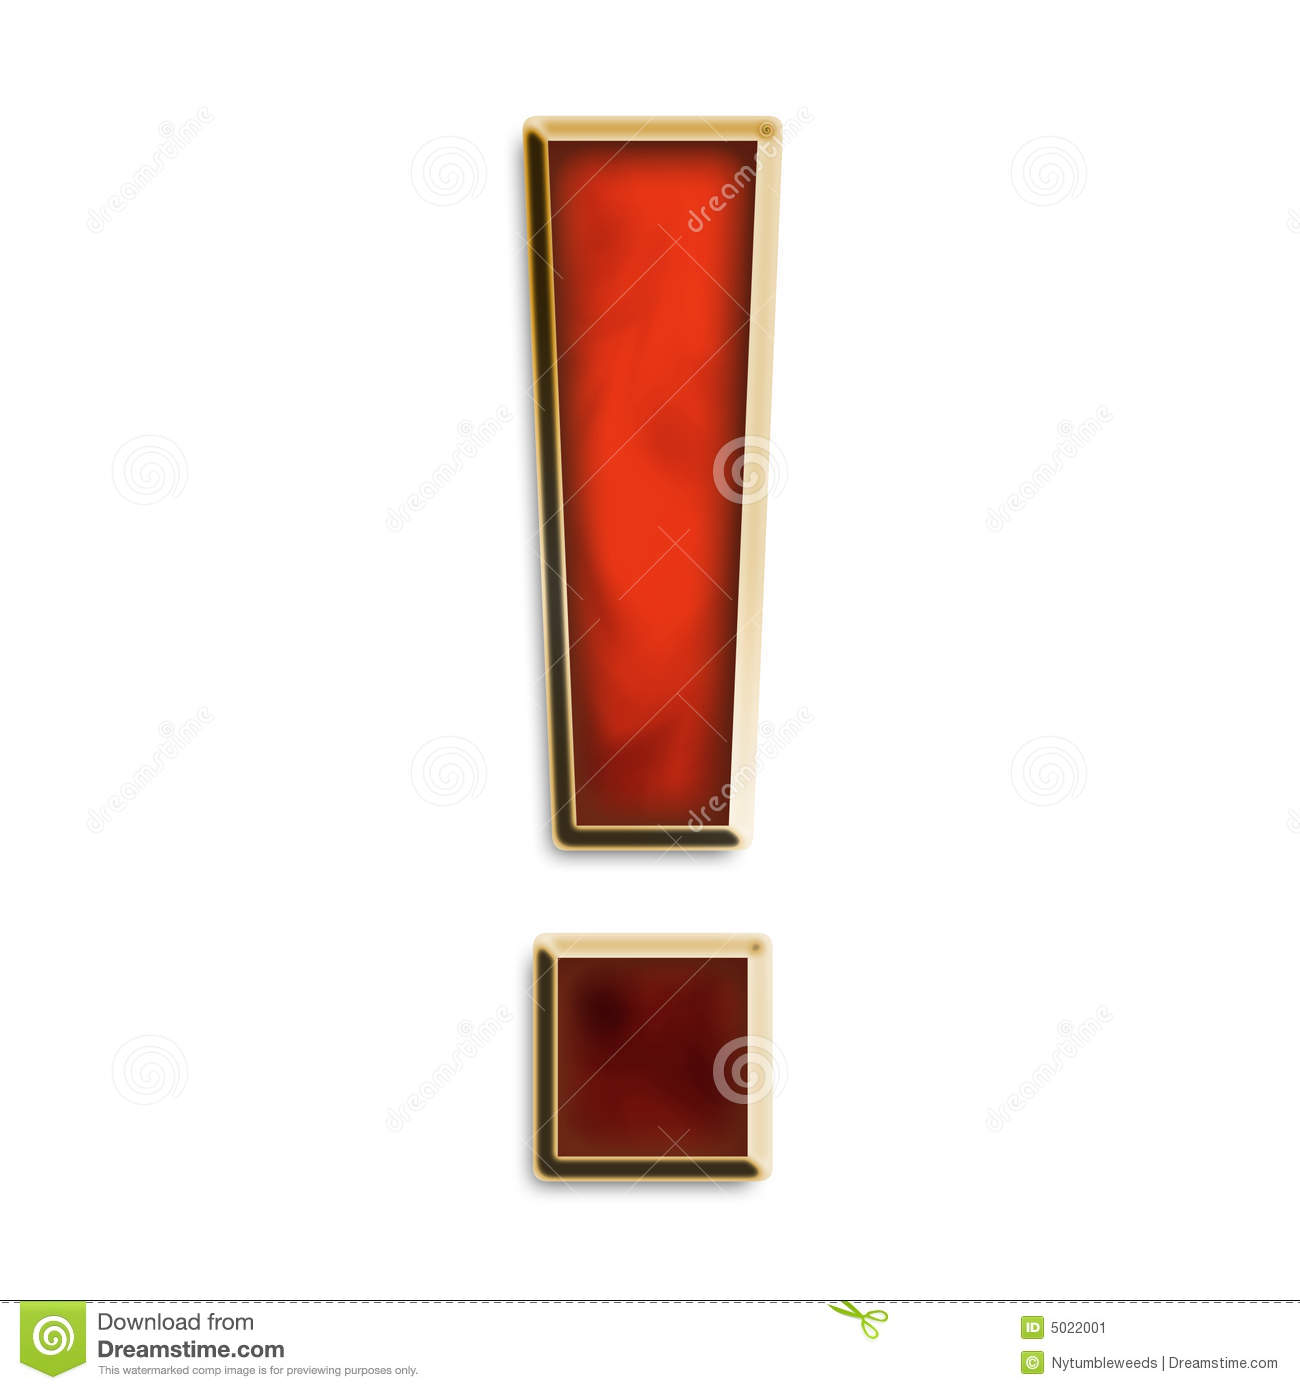 More similar stock images of ` Exclamation point in fiery red `